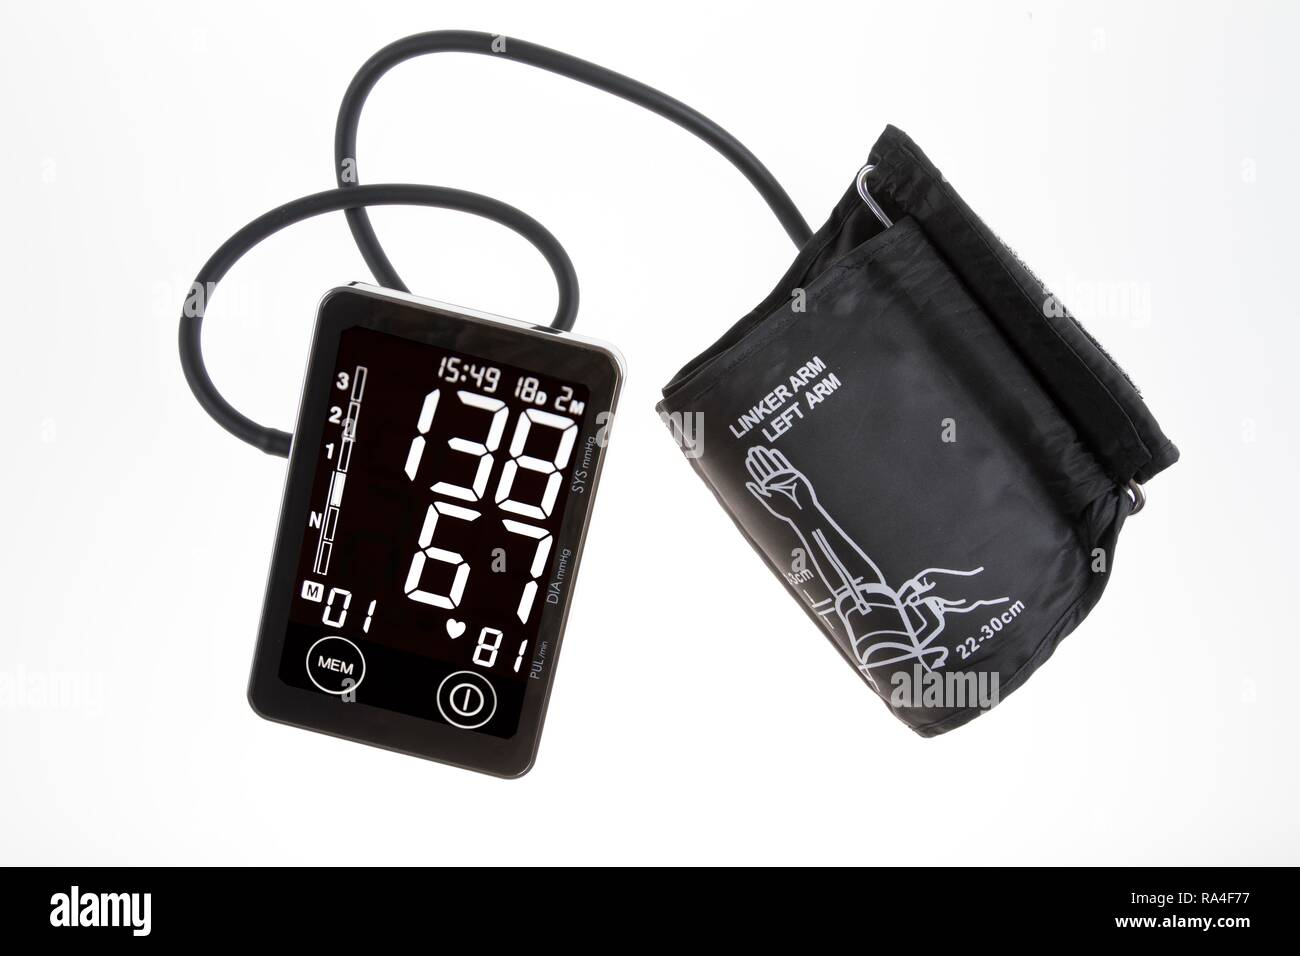 Blood Pressure Monitor Digital Display Upper Arm Cuff For Self Measurement Stock Photo Alamy